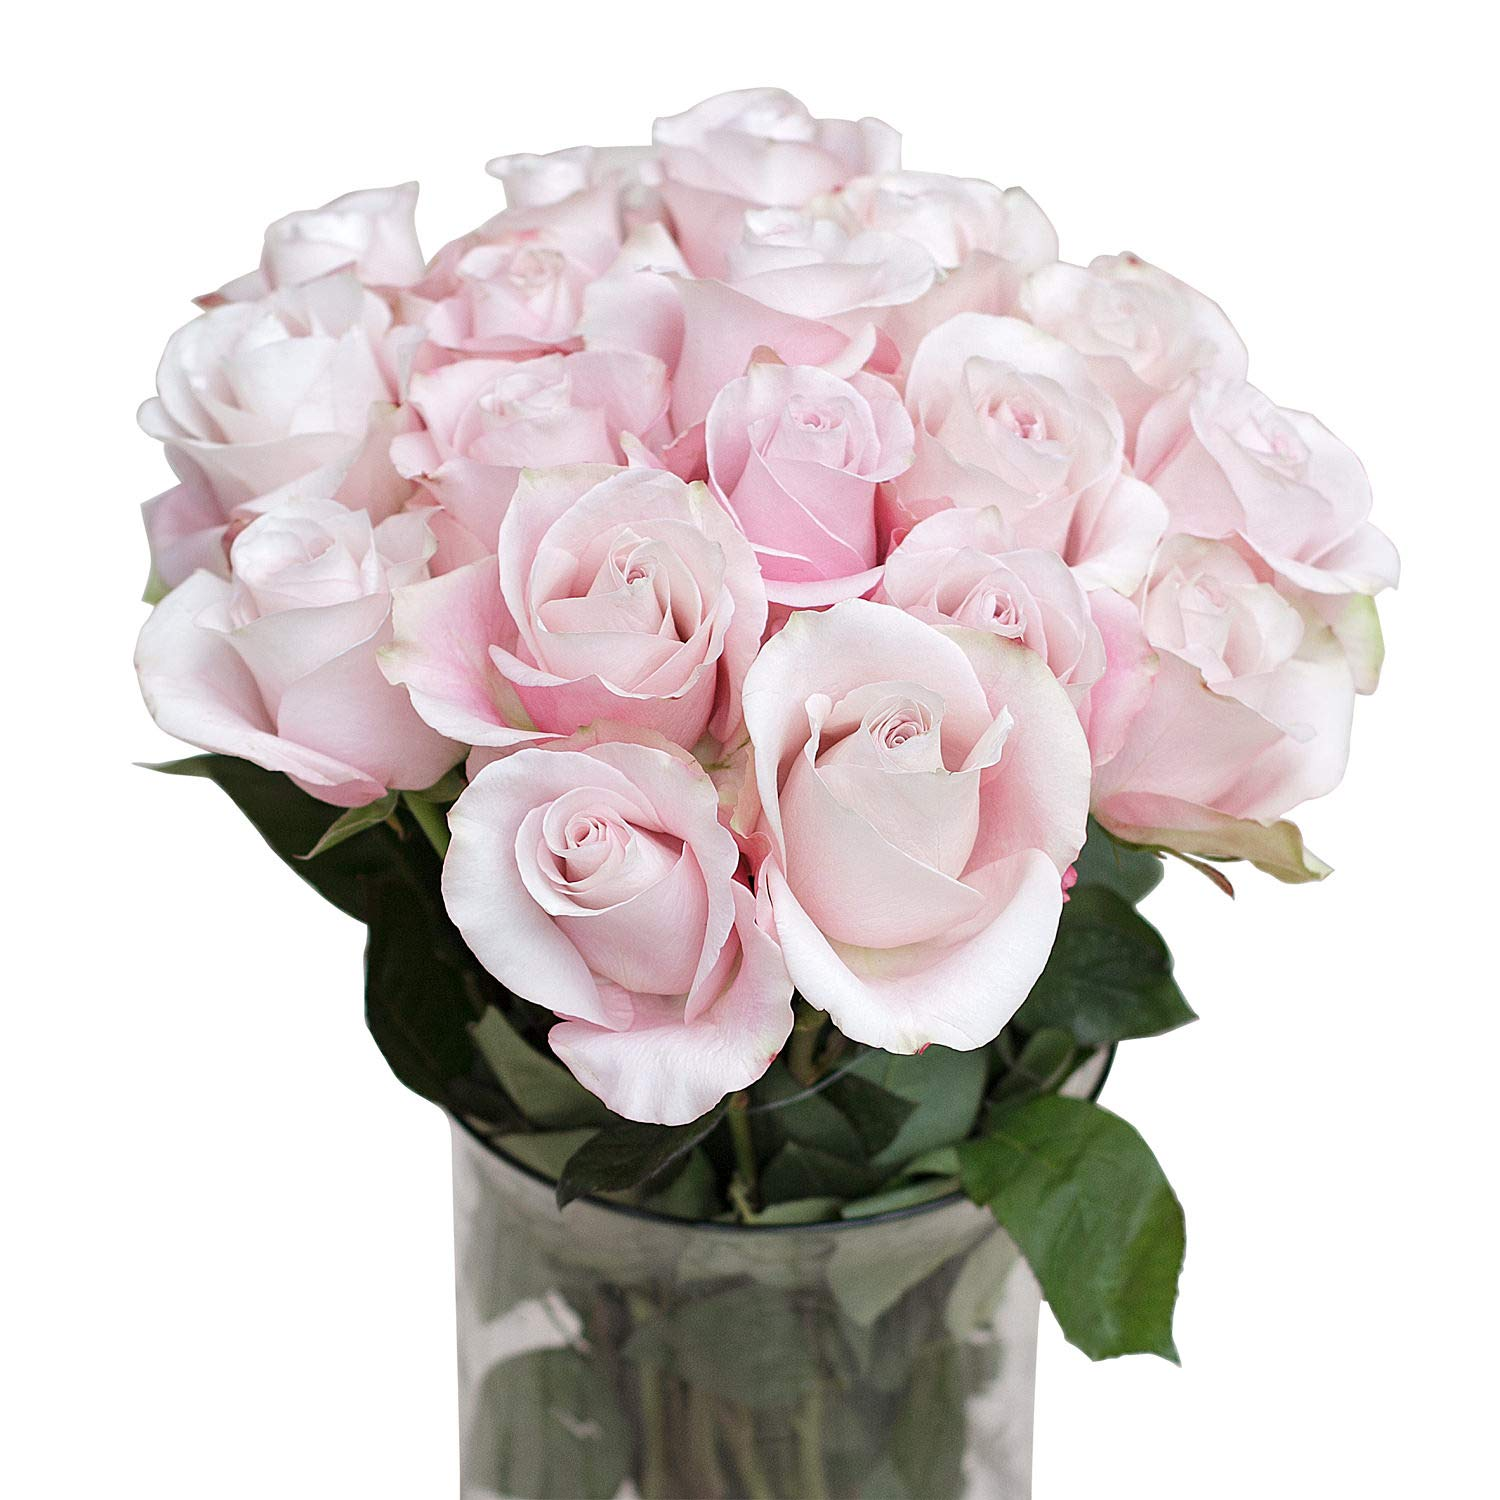 Green Choice Flowers - 24 ( 2 Dozen ) Premium Pink Fresh Roses with 20 inch Long Stem Farm Fresh Flowers Beautiful Light Pink Rose Flower Cut Per Order Direct from Farm Free Fast Delivery Long Lasting by Greenchoiceflowers (Image #1)